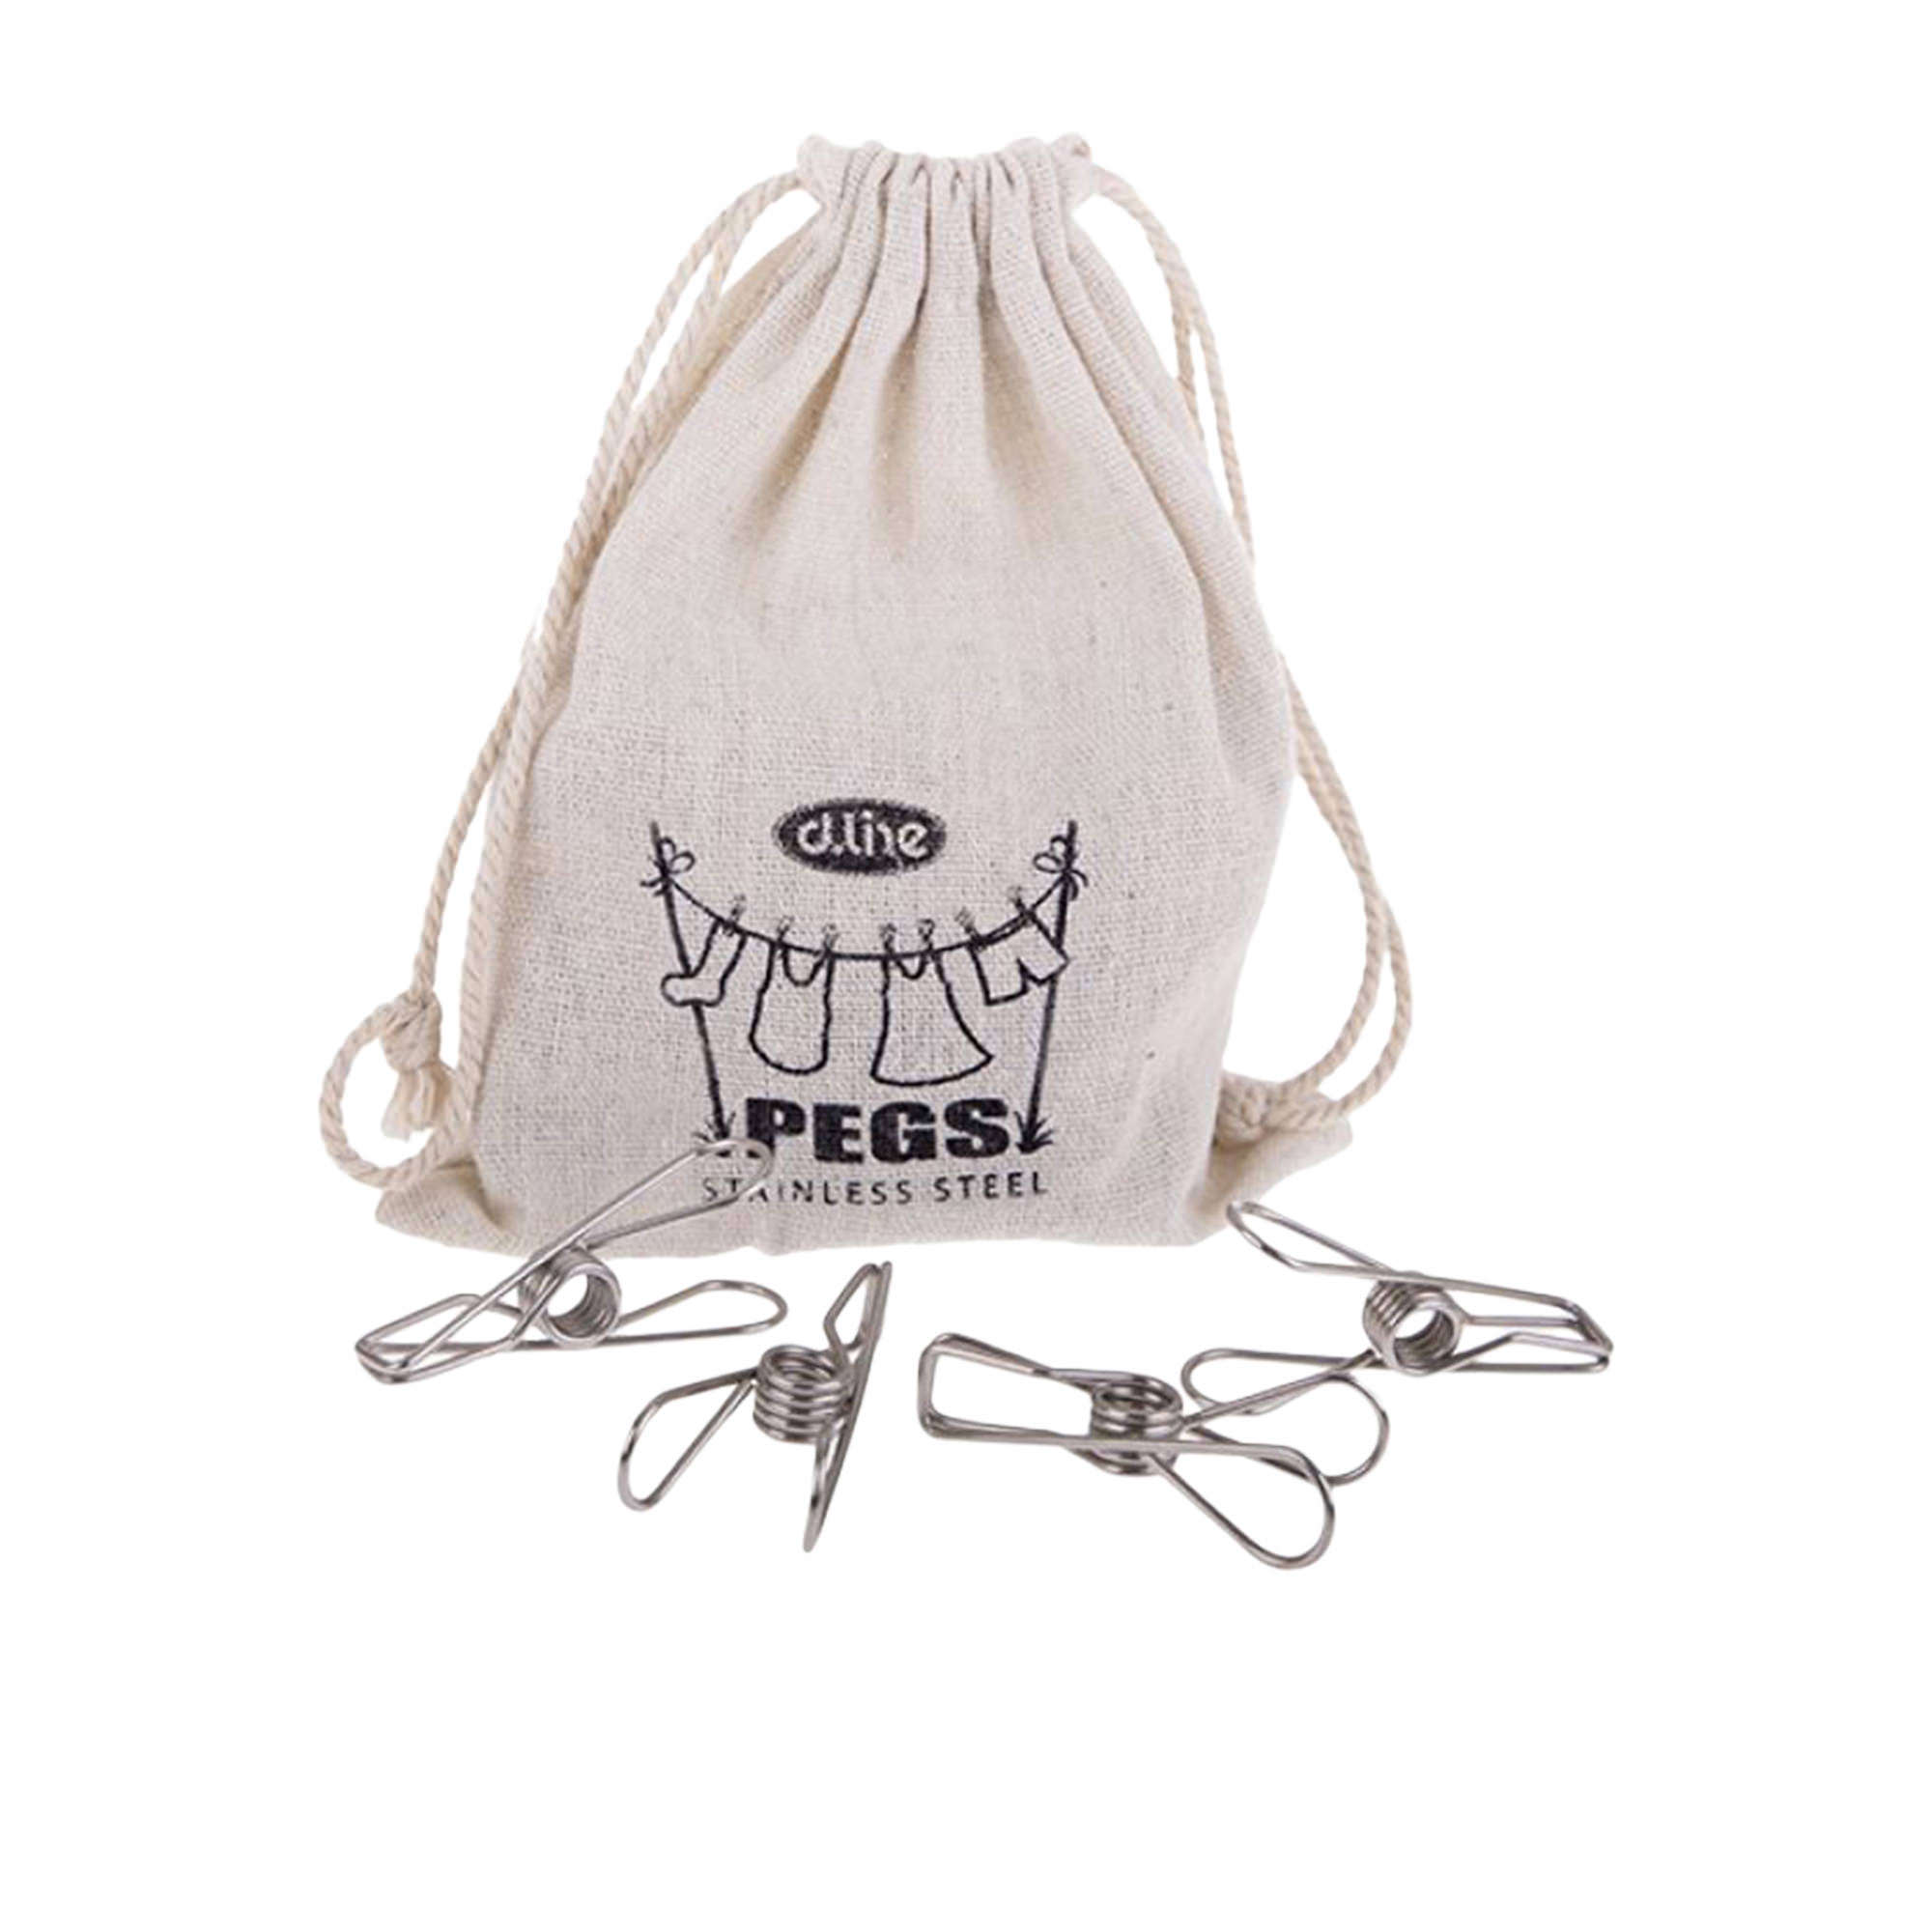 D.Line 36pc Stainless Steel Wire Pegs in Hemp Bag